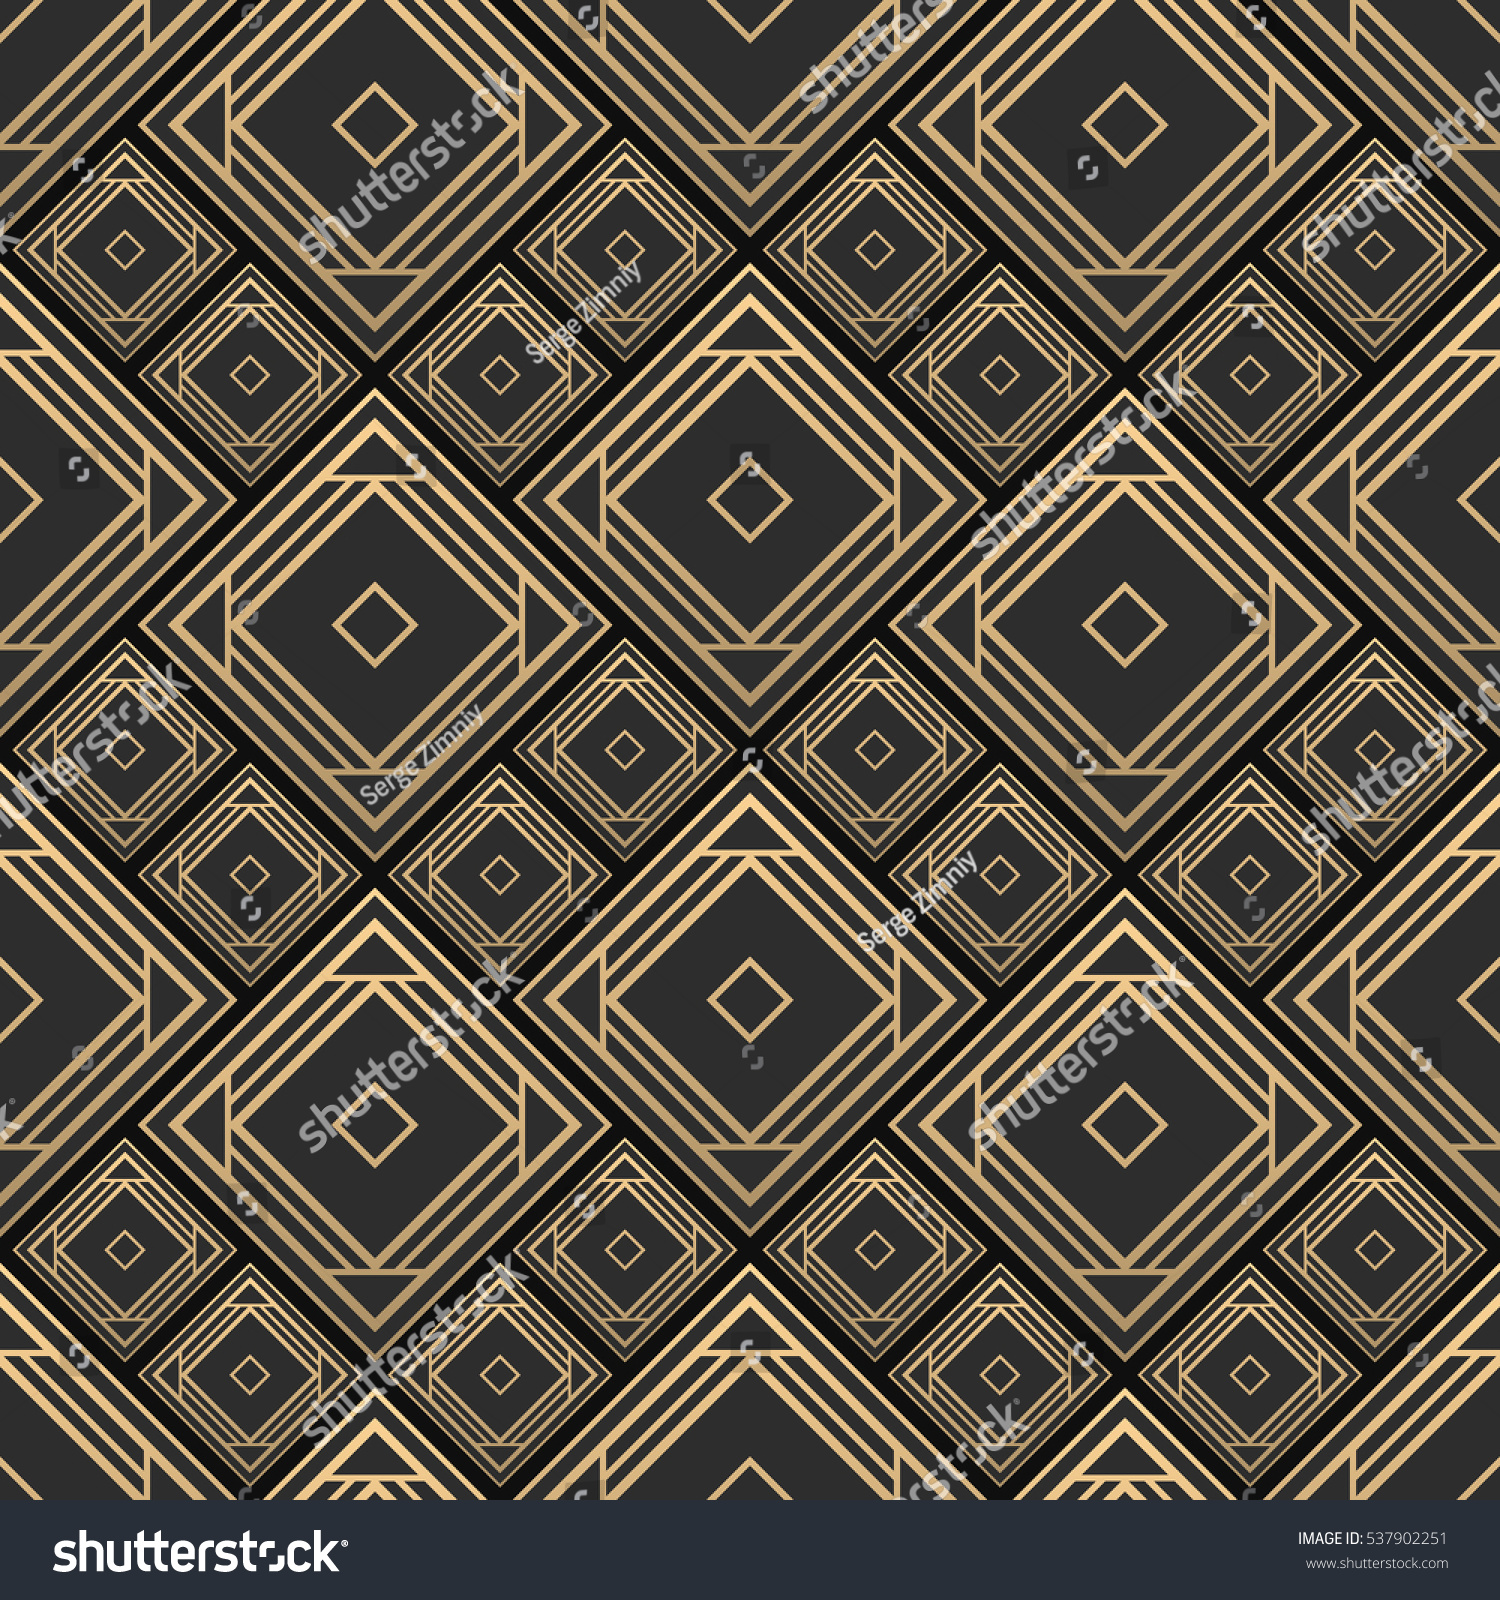 Art deco tile patterns more similar stock images of art deco art deco ceramic tile gallery dailygadgetfo Images